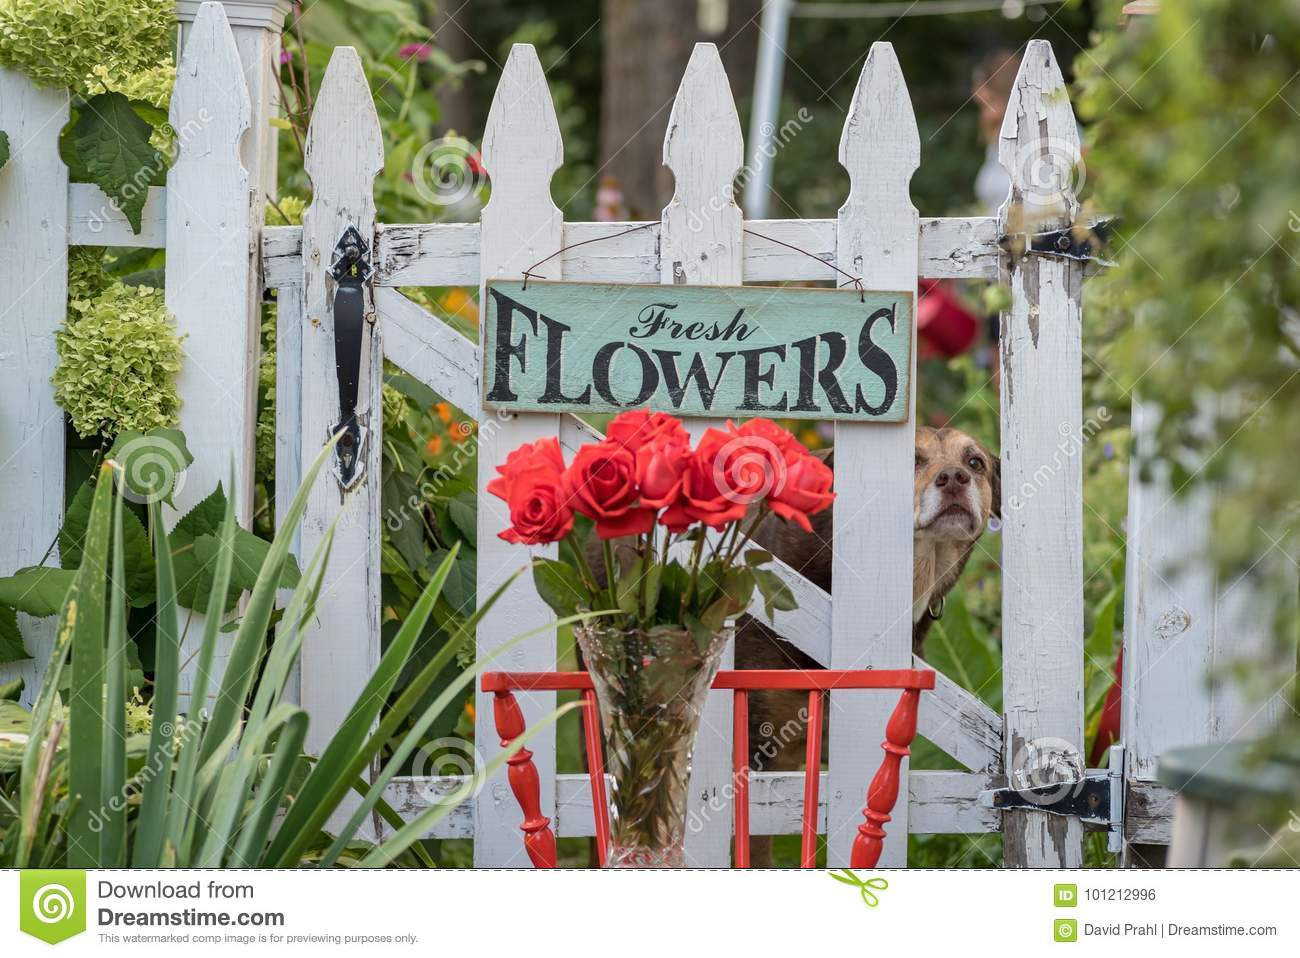 Fresh flowers sign hanging on fence stock photo image of decor roses and white picket fence with fresh flowers sign in backyard garden mightylinksfo